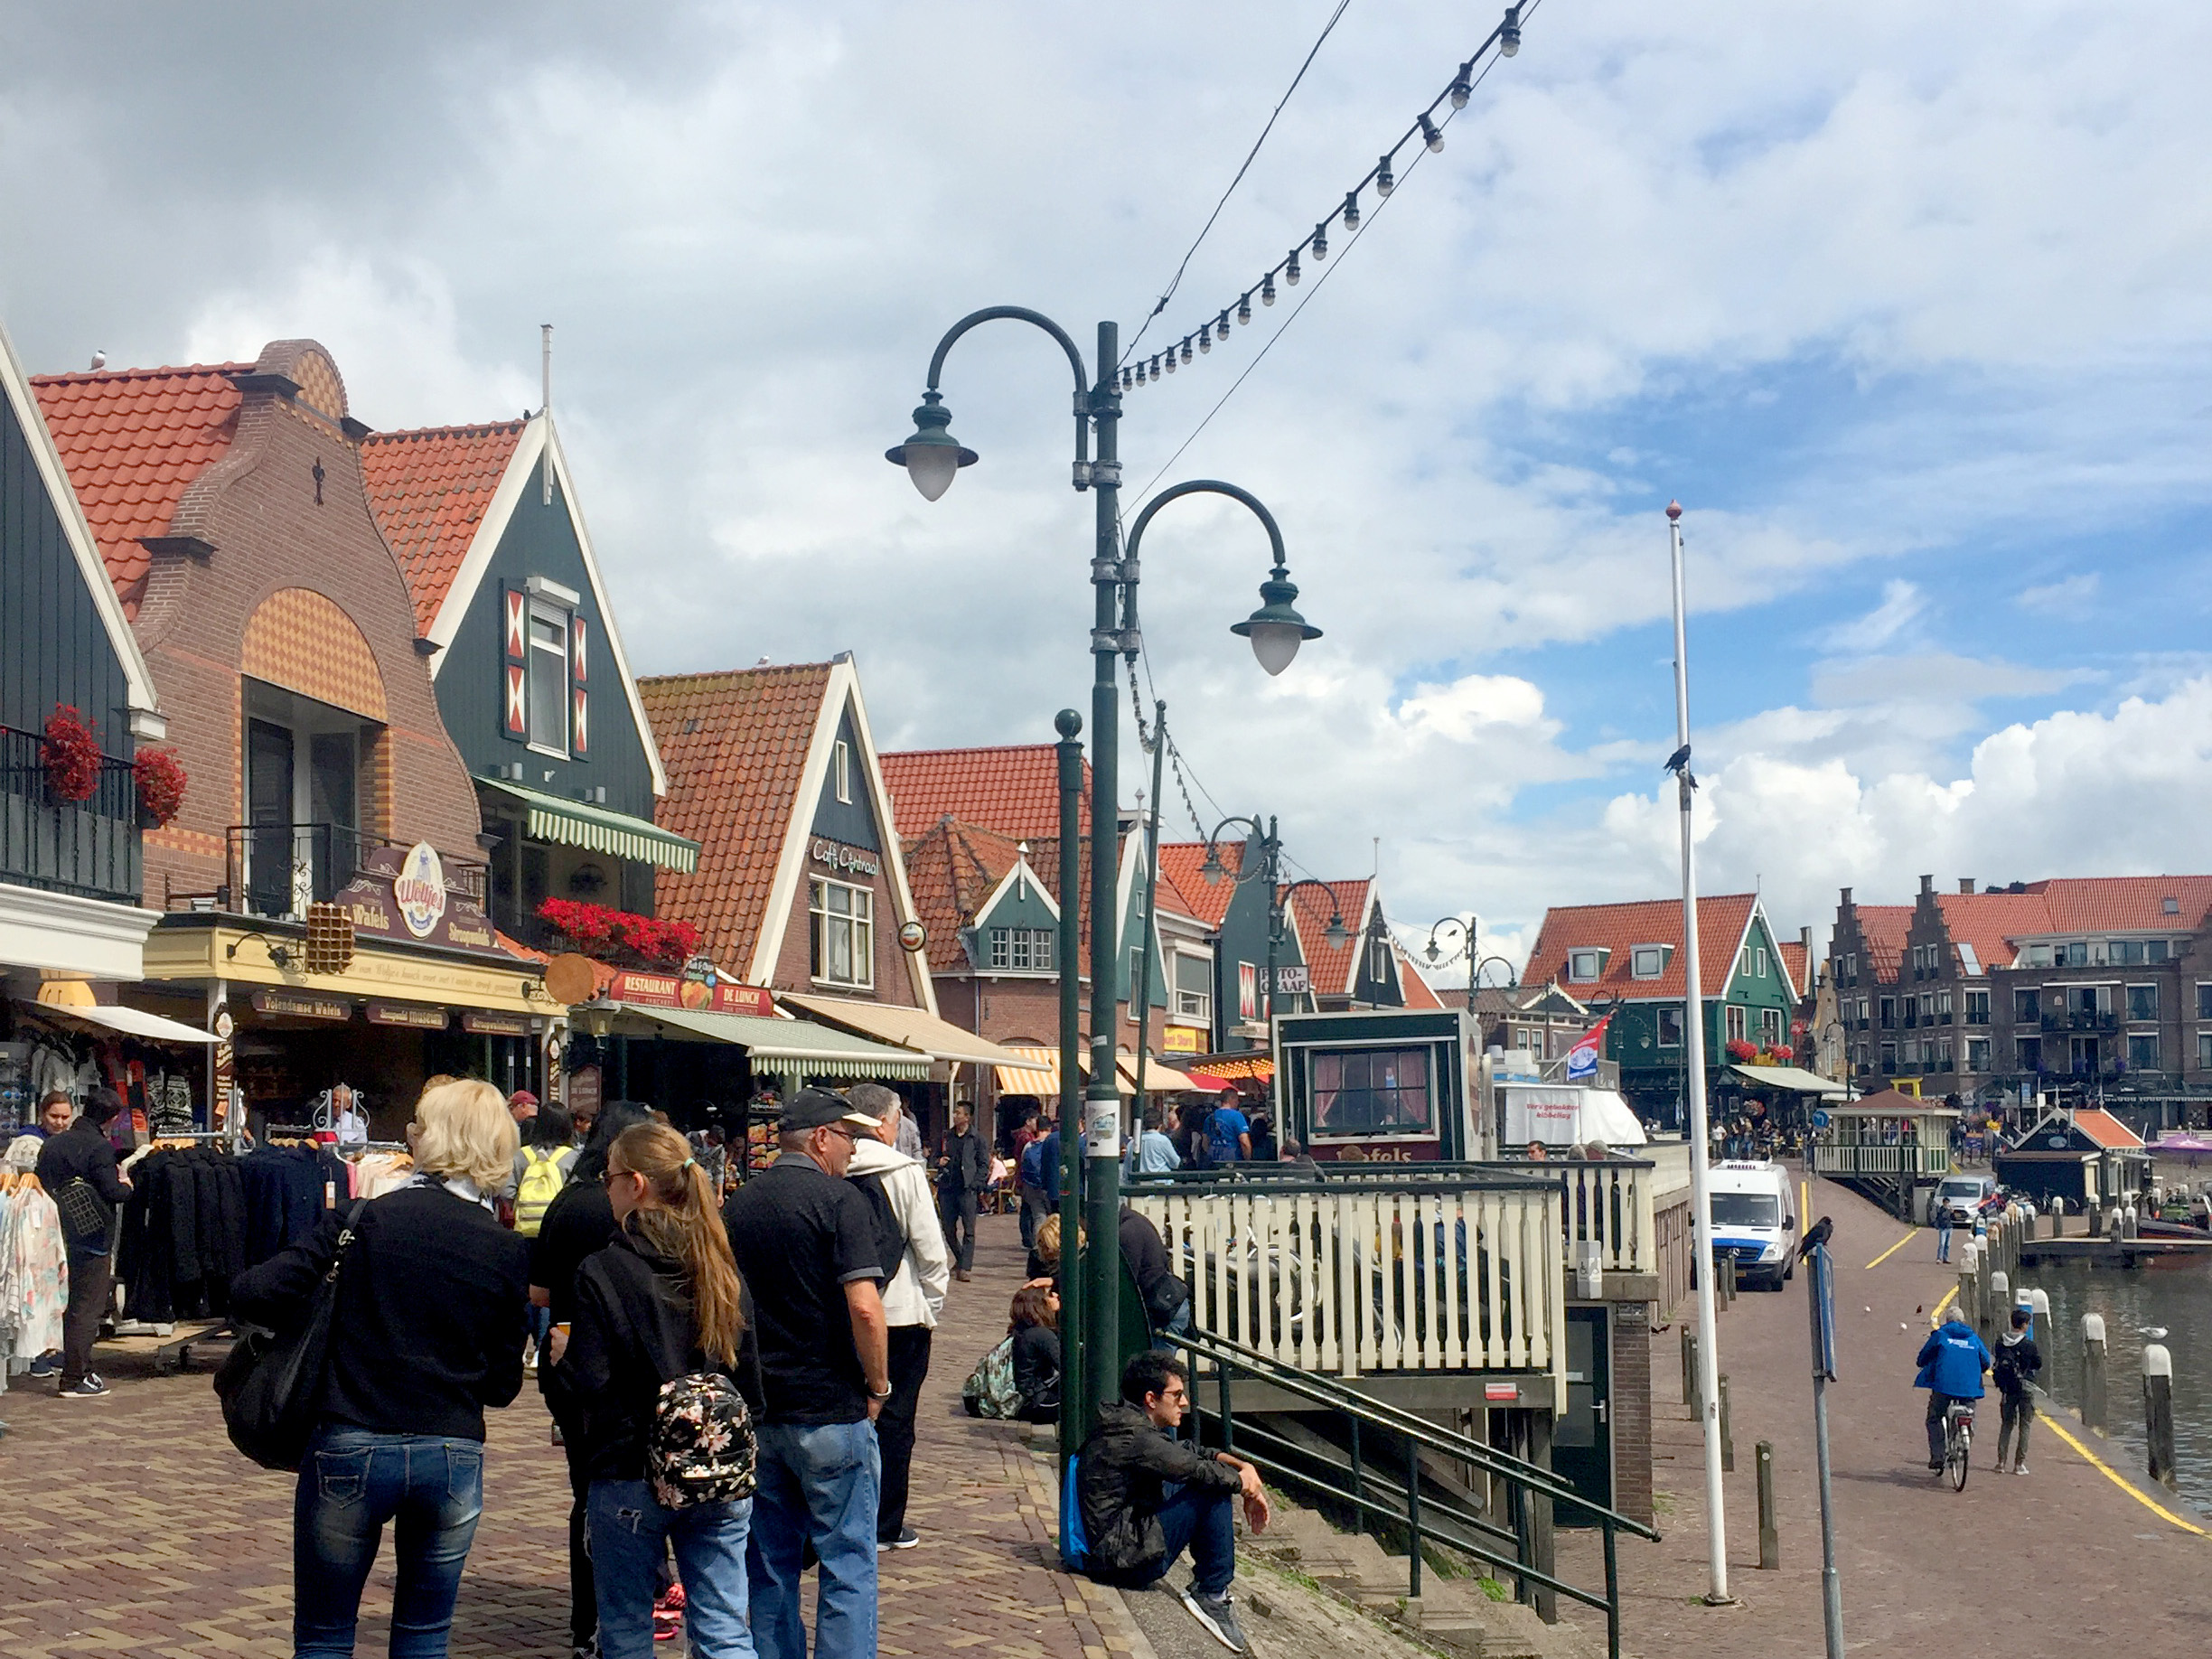 Next we stopped at Volendam - a small fishing village.